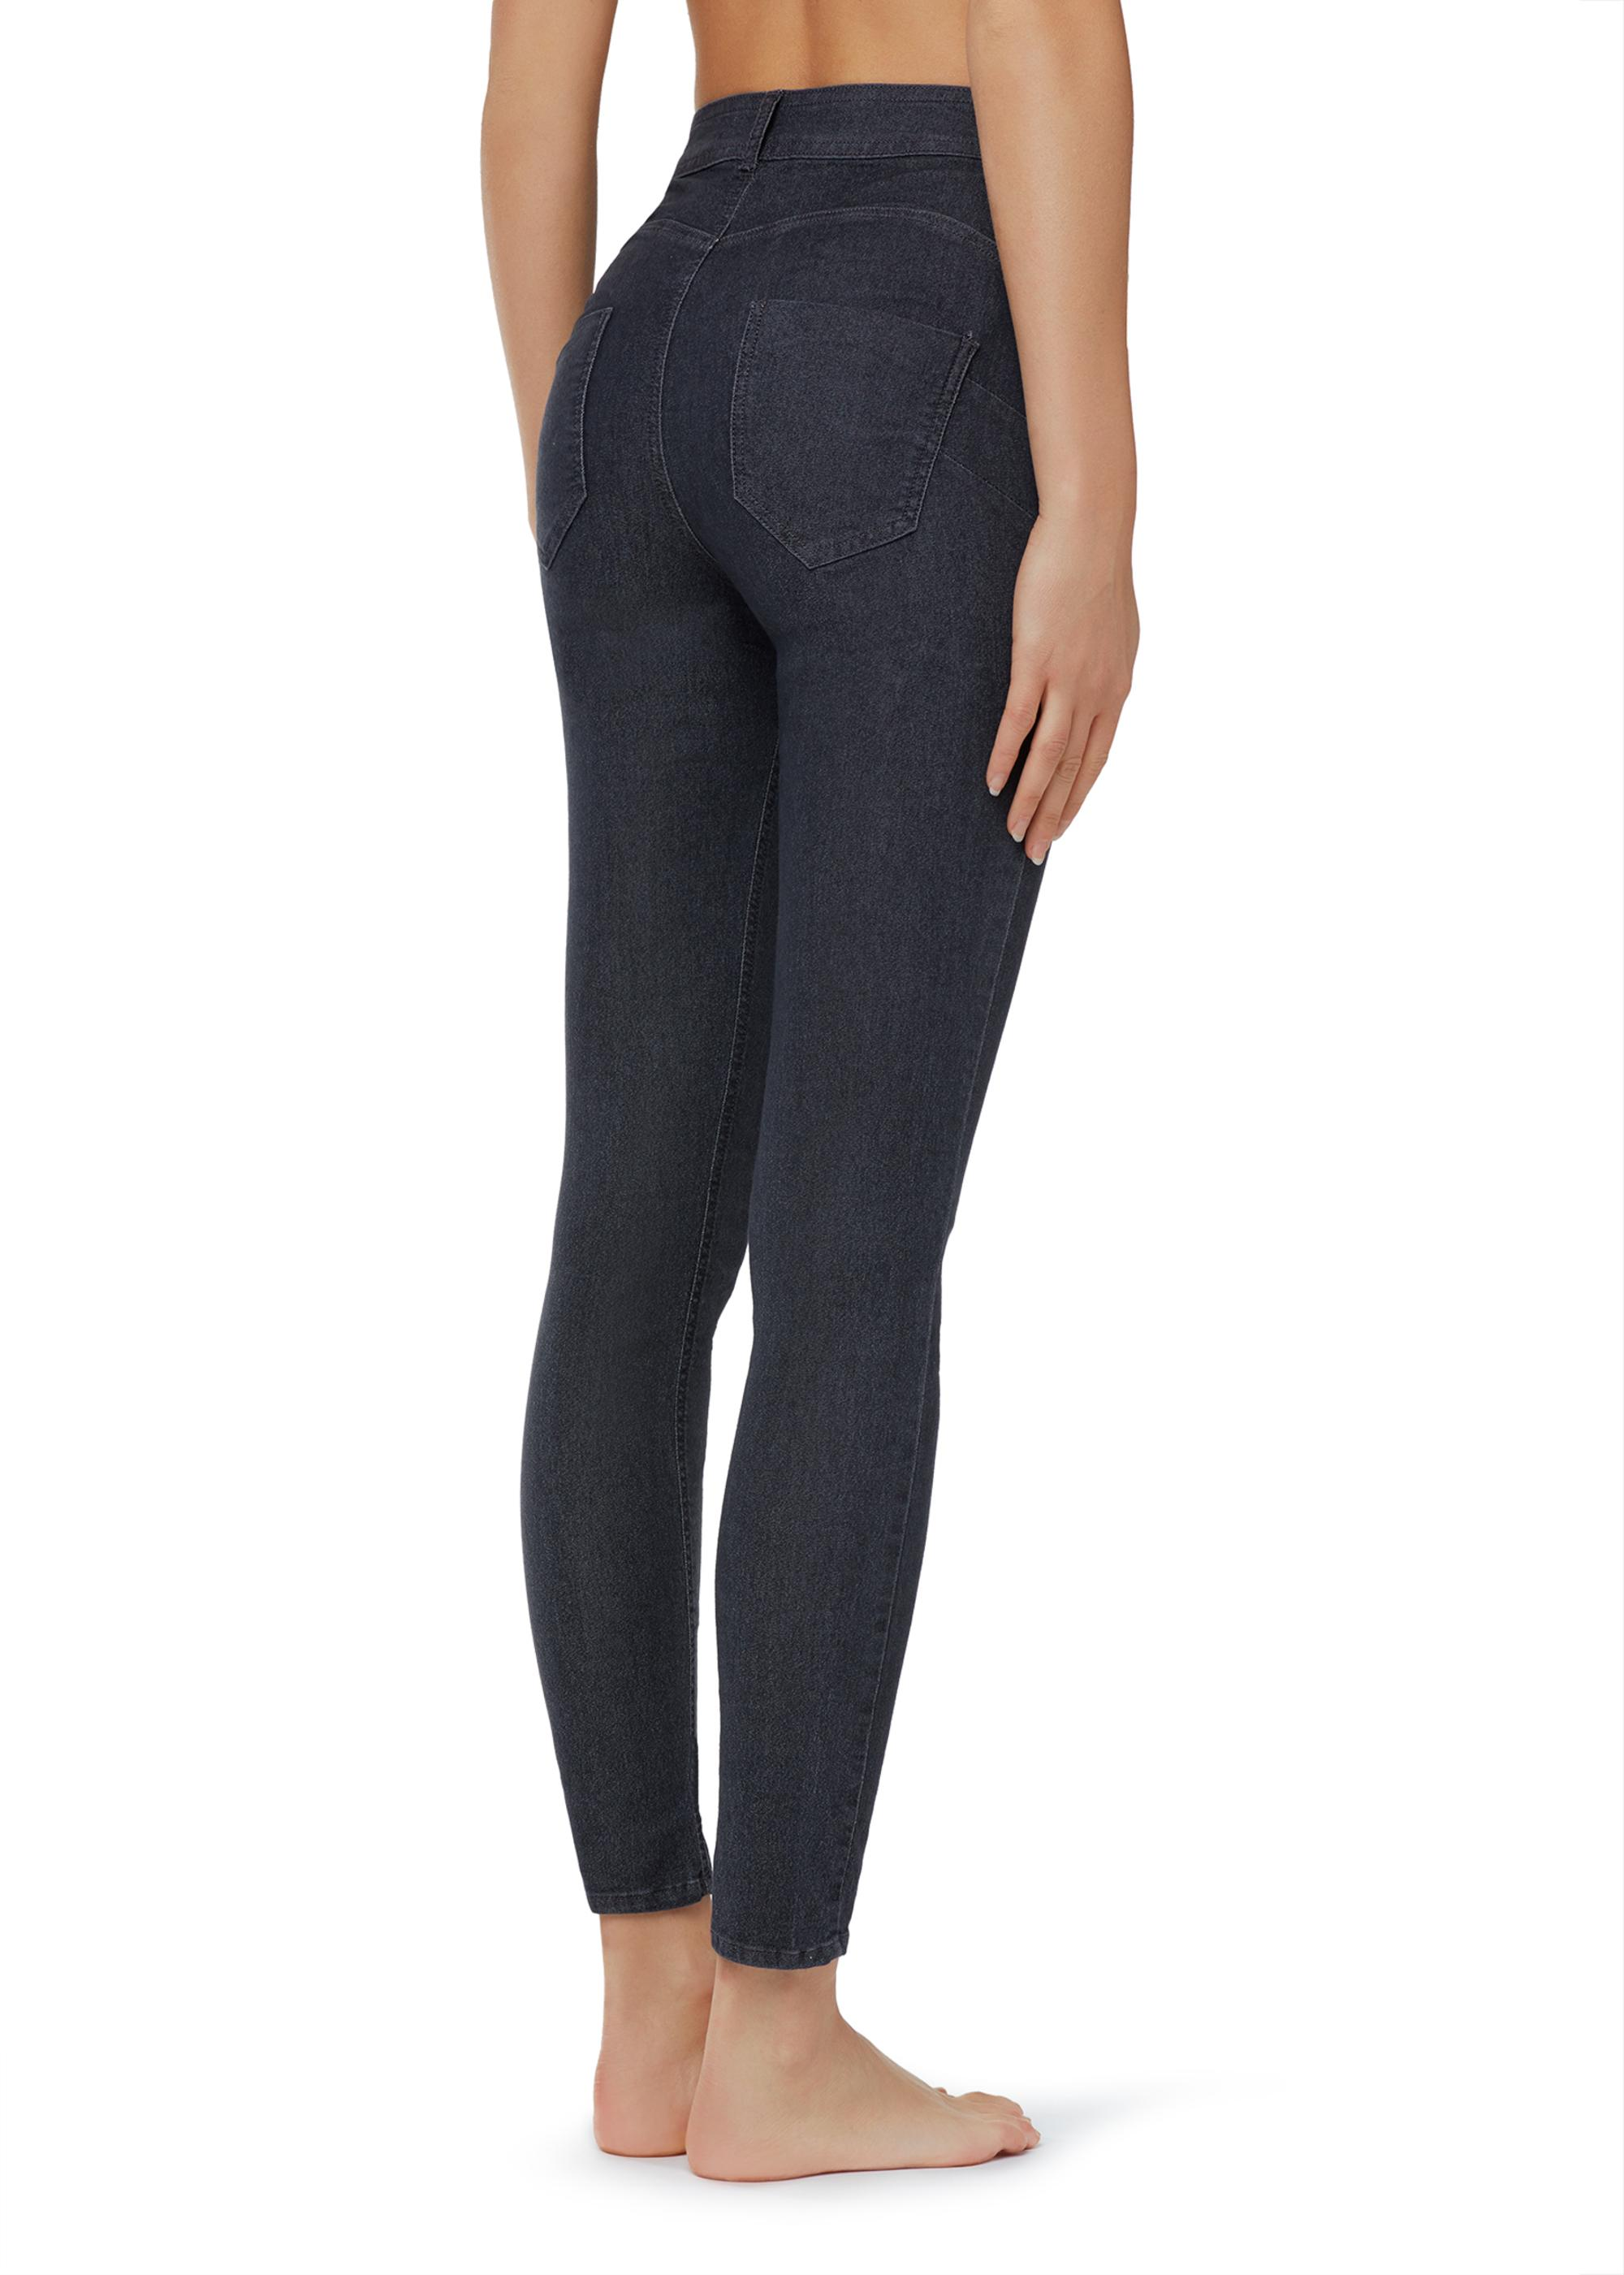 timeless design 51106 0e98d Push-Up Jeans - Calzedonia